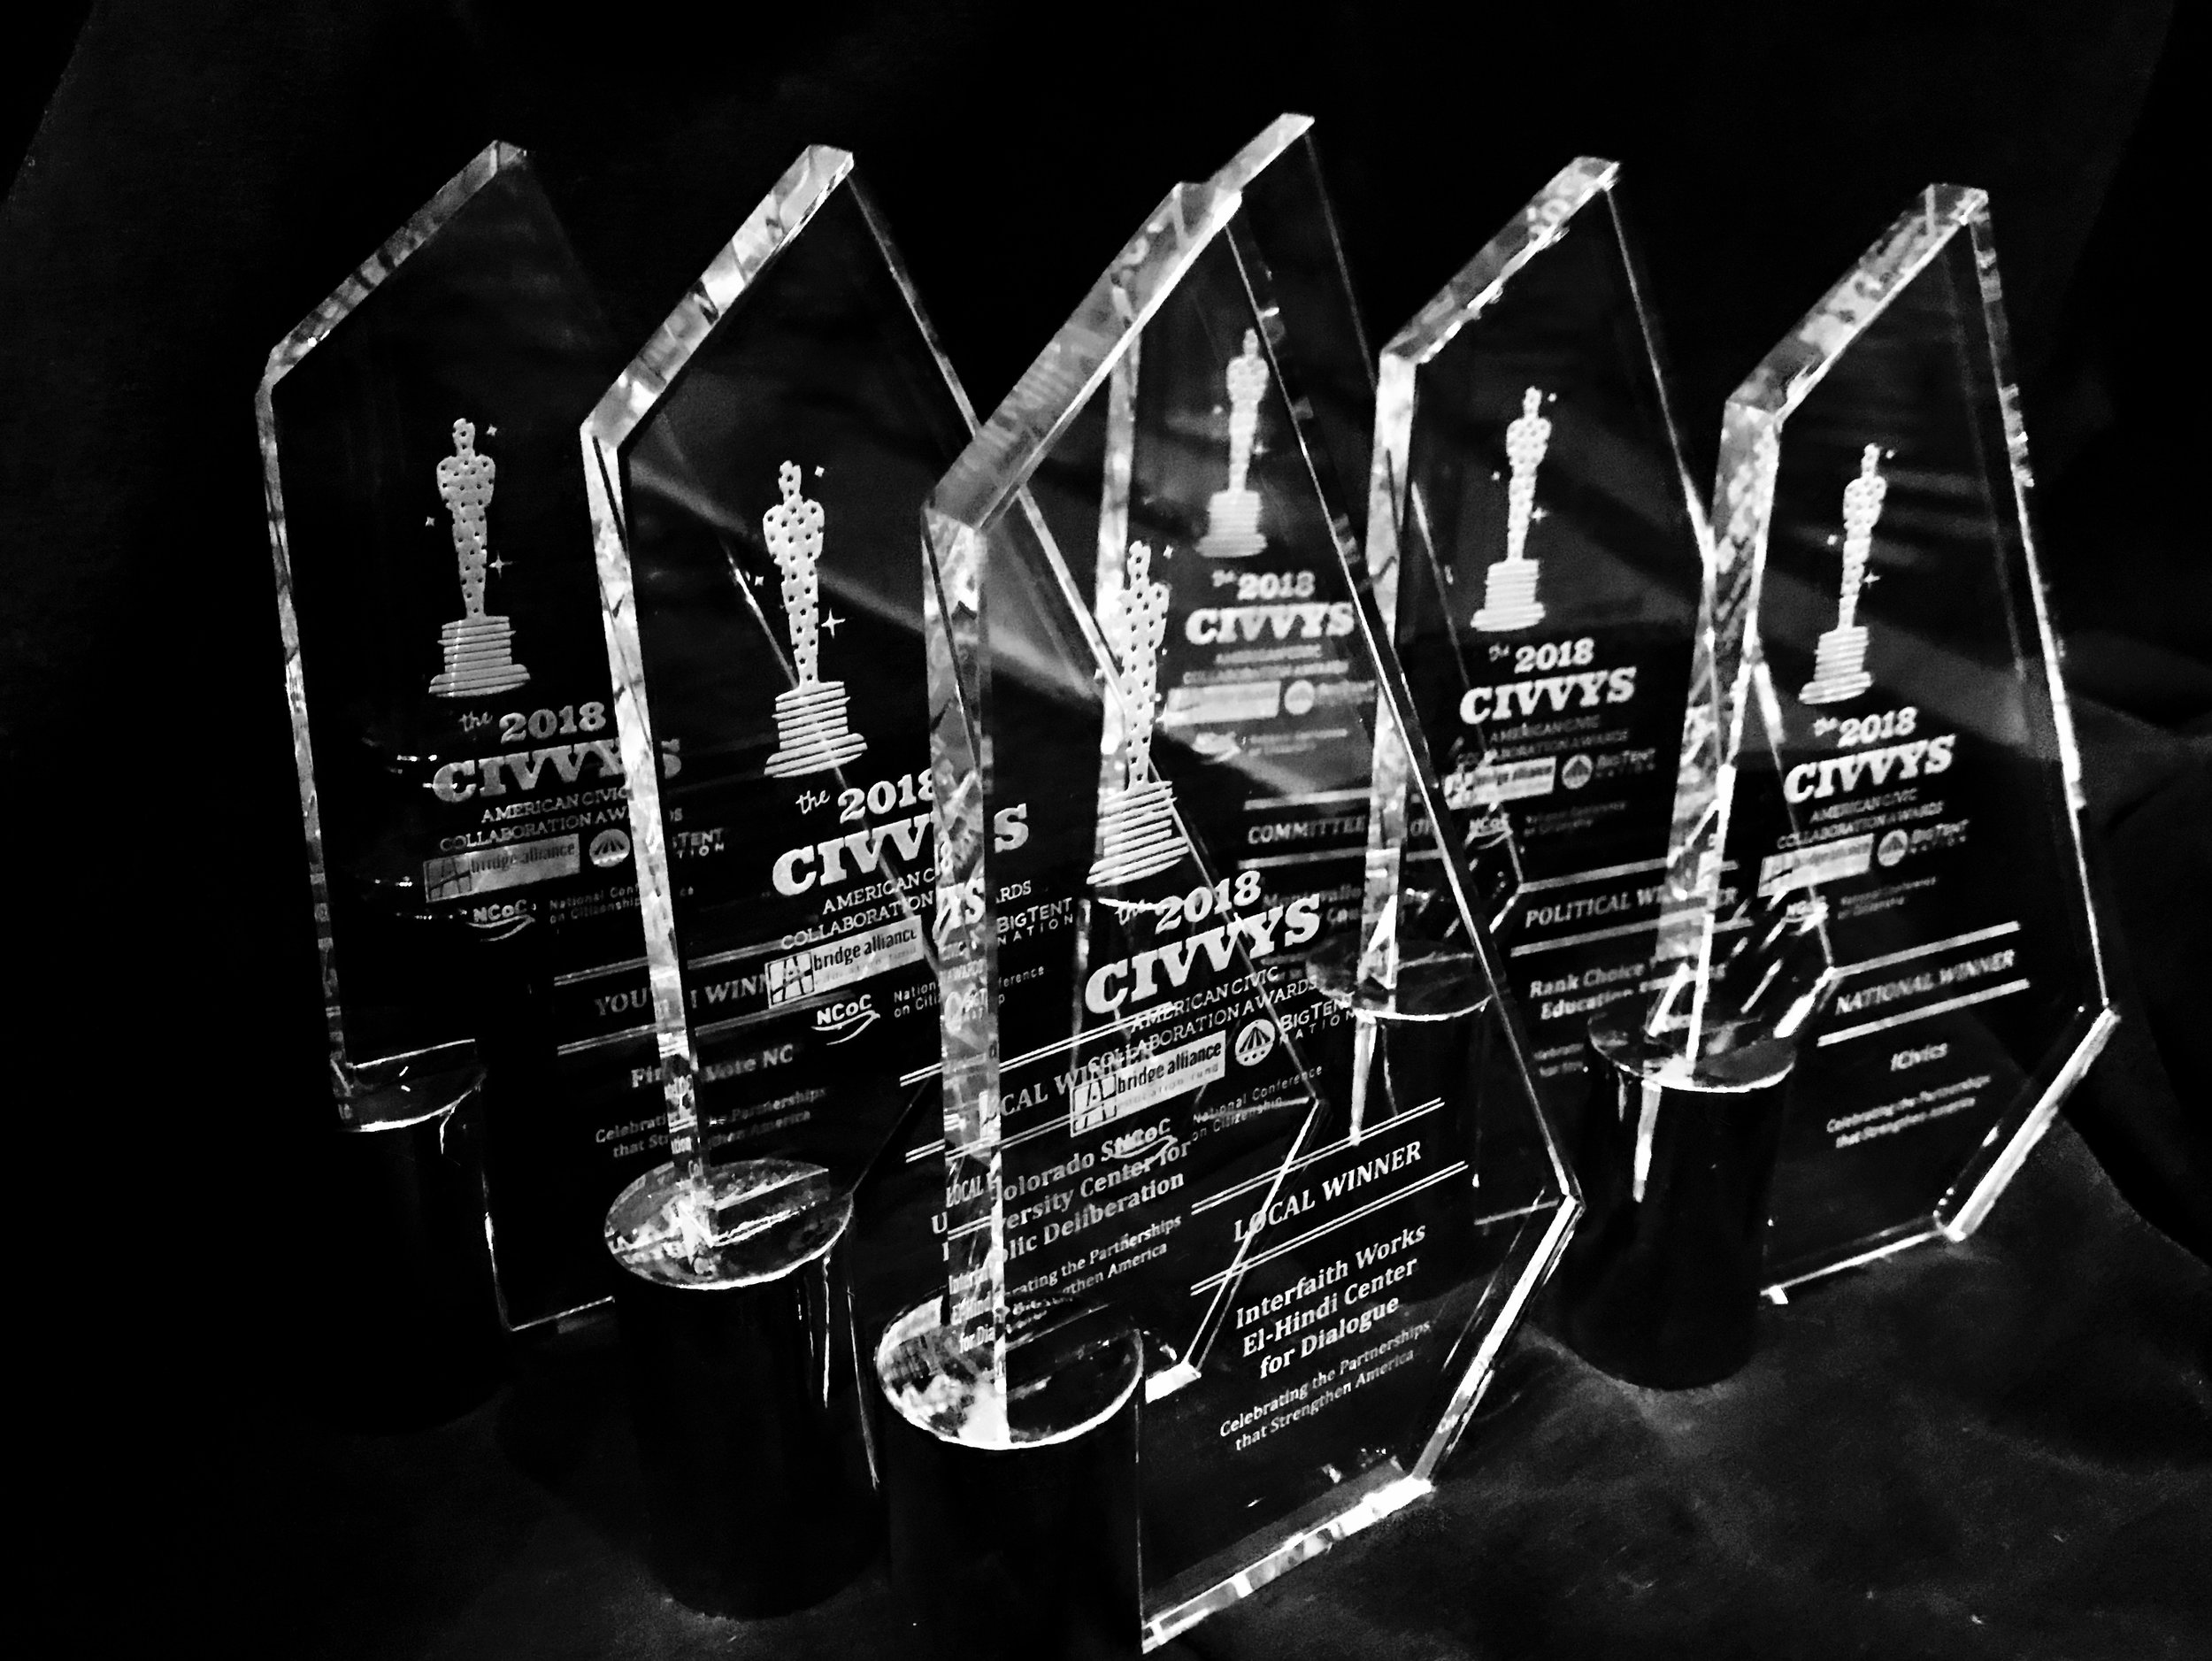 This year's trophies